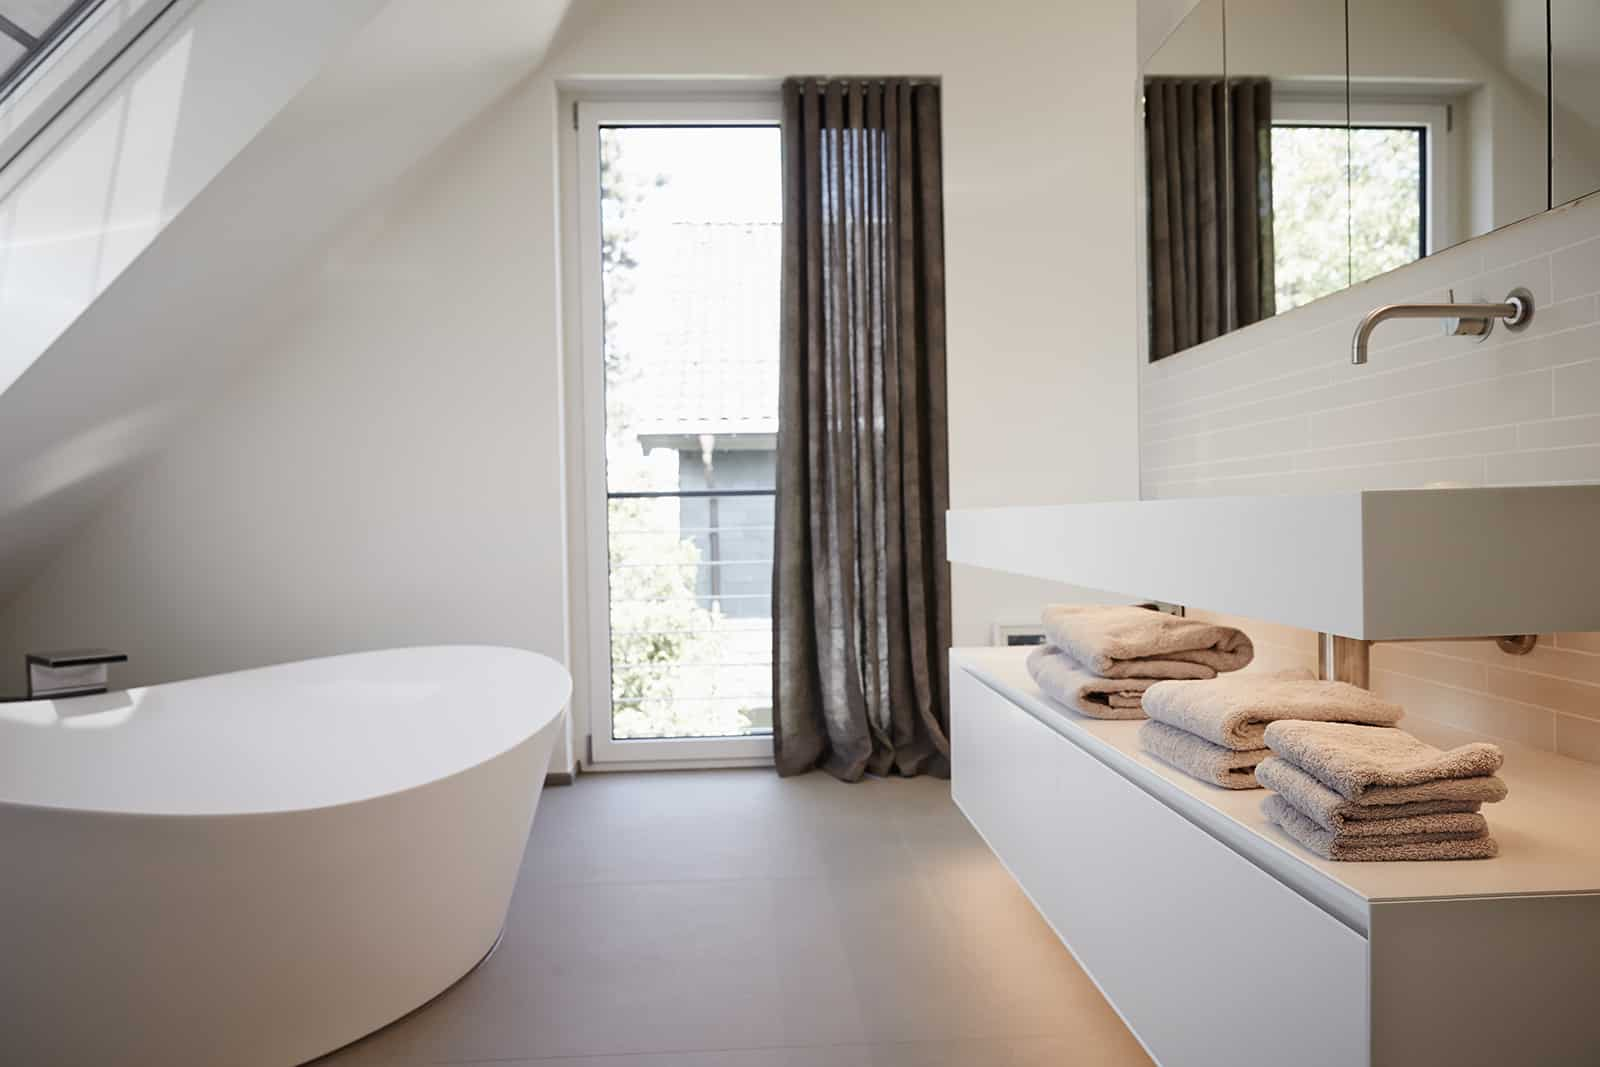 ultra modern white bathroom designed and installed by eggersmann